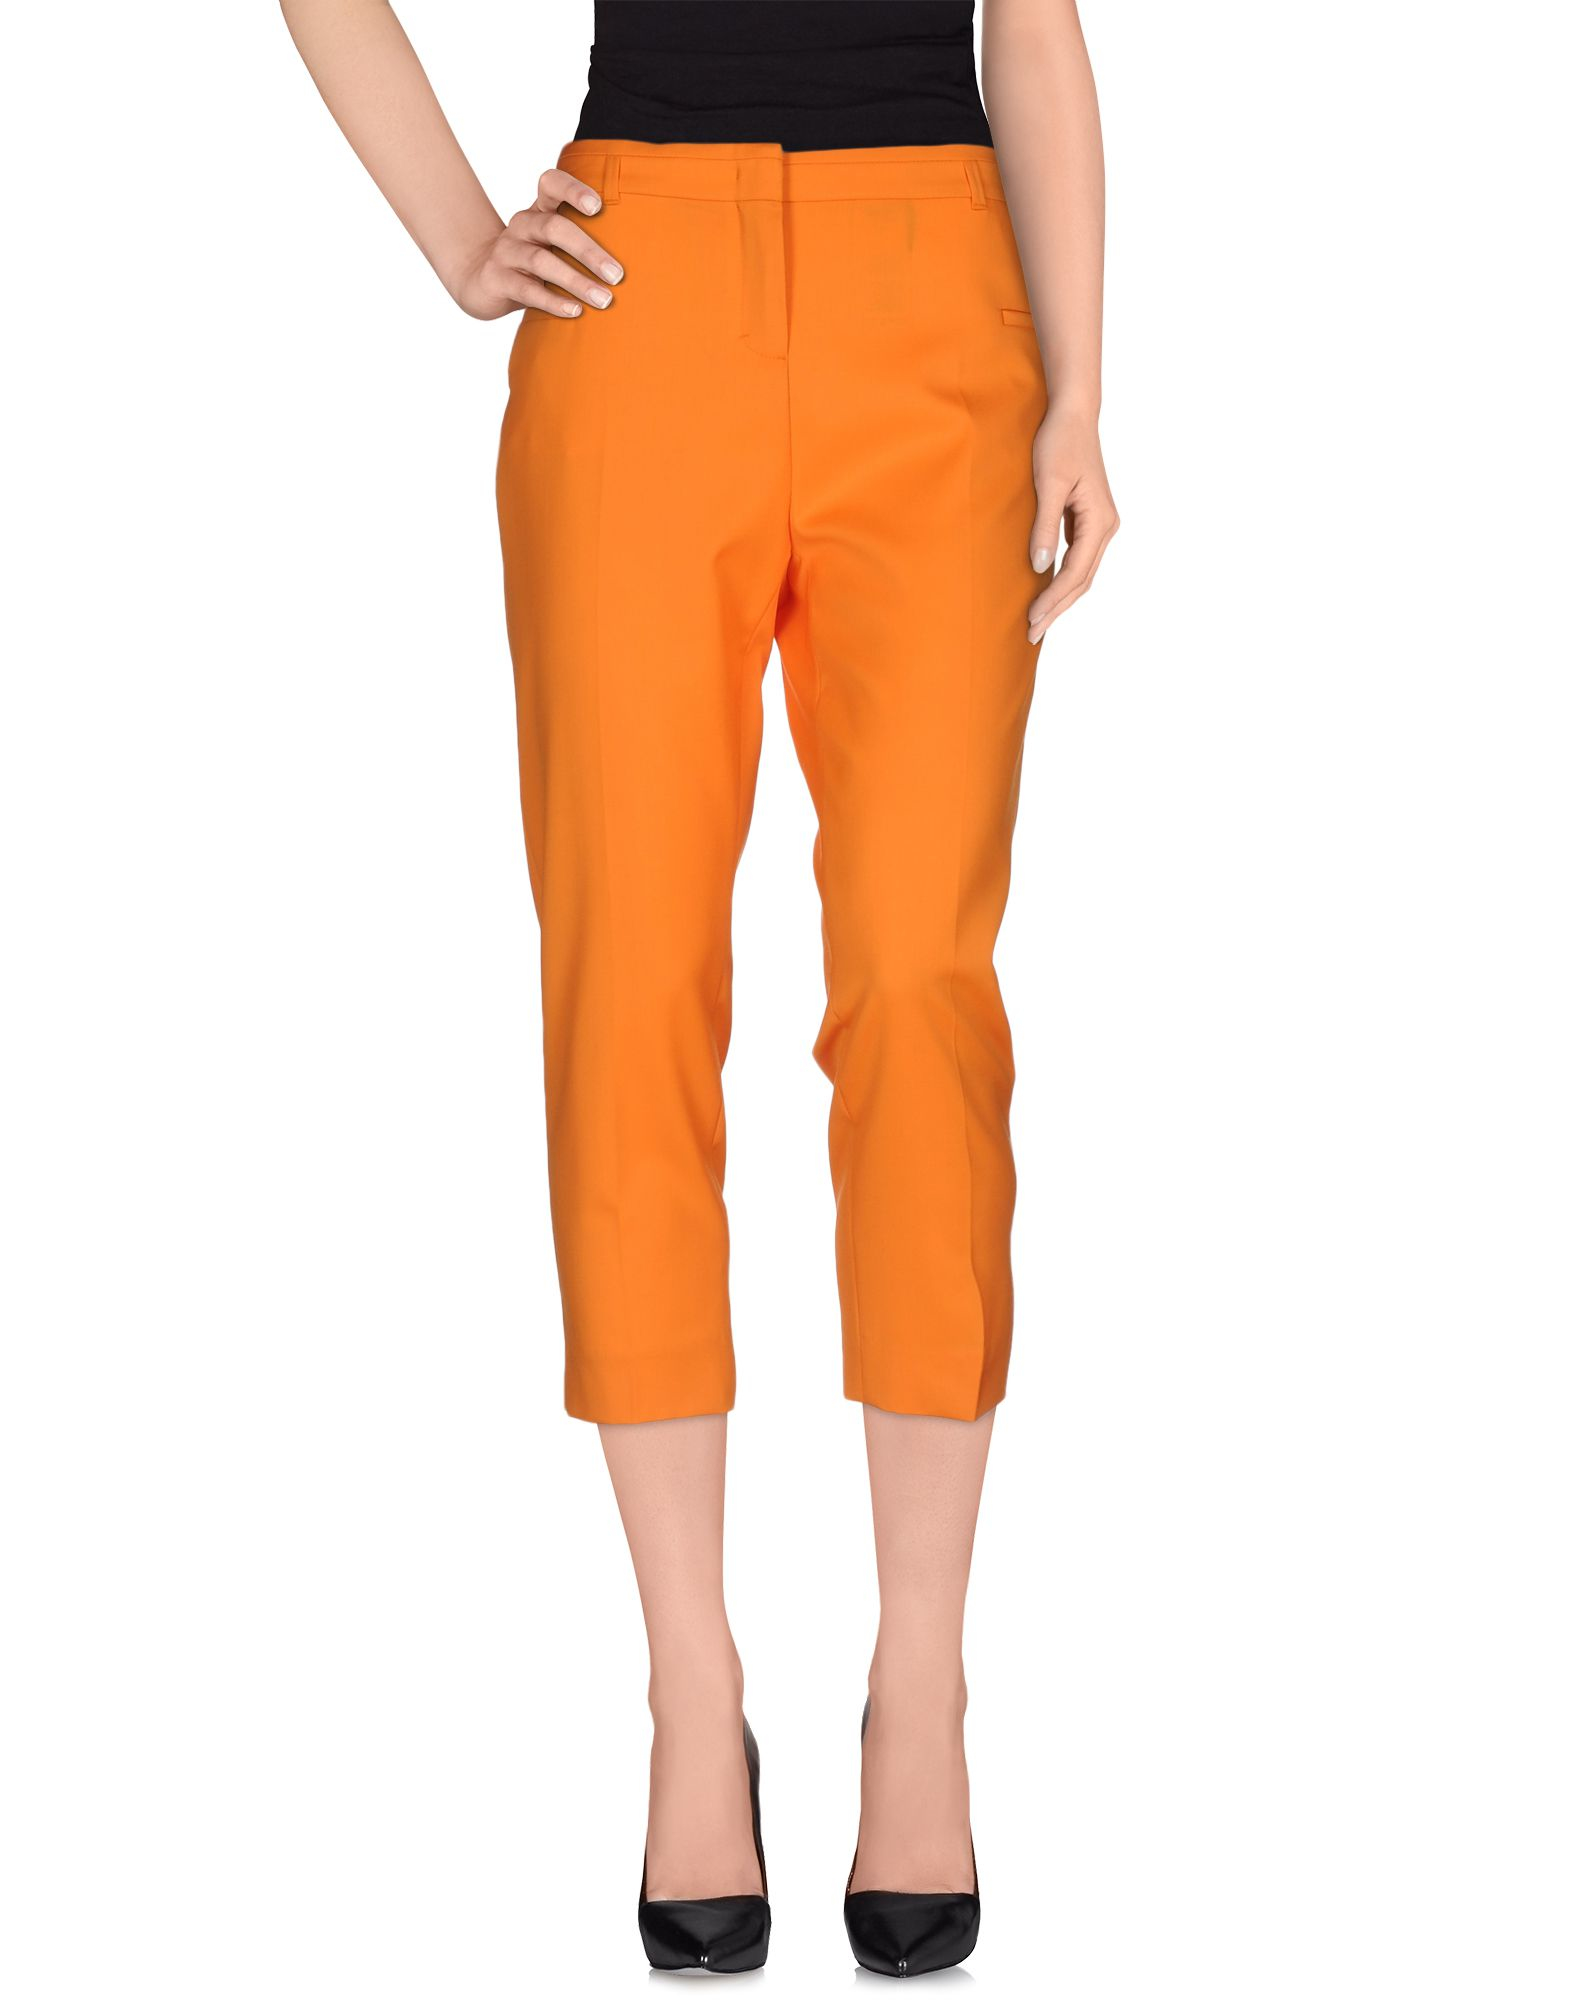 Popular Womens Southpole Pants And Jeans Southpole Clothing At ColdBlingcom